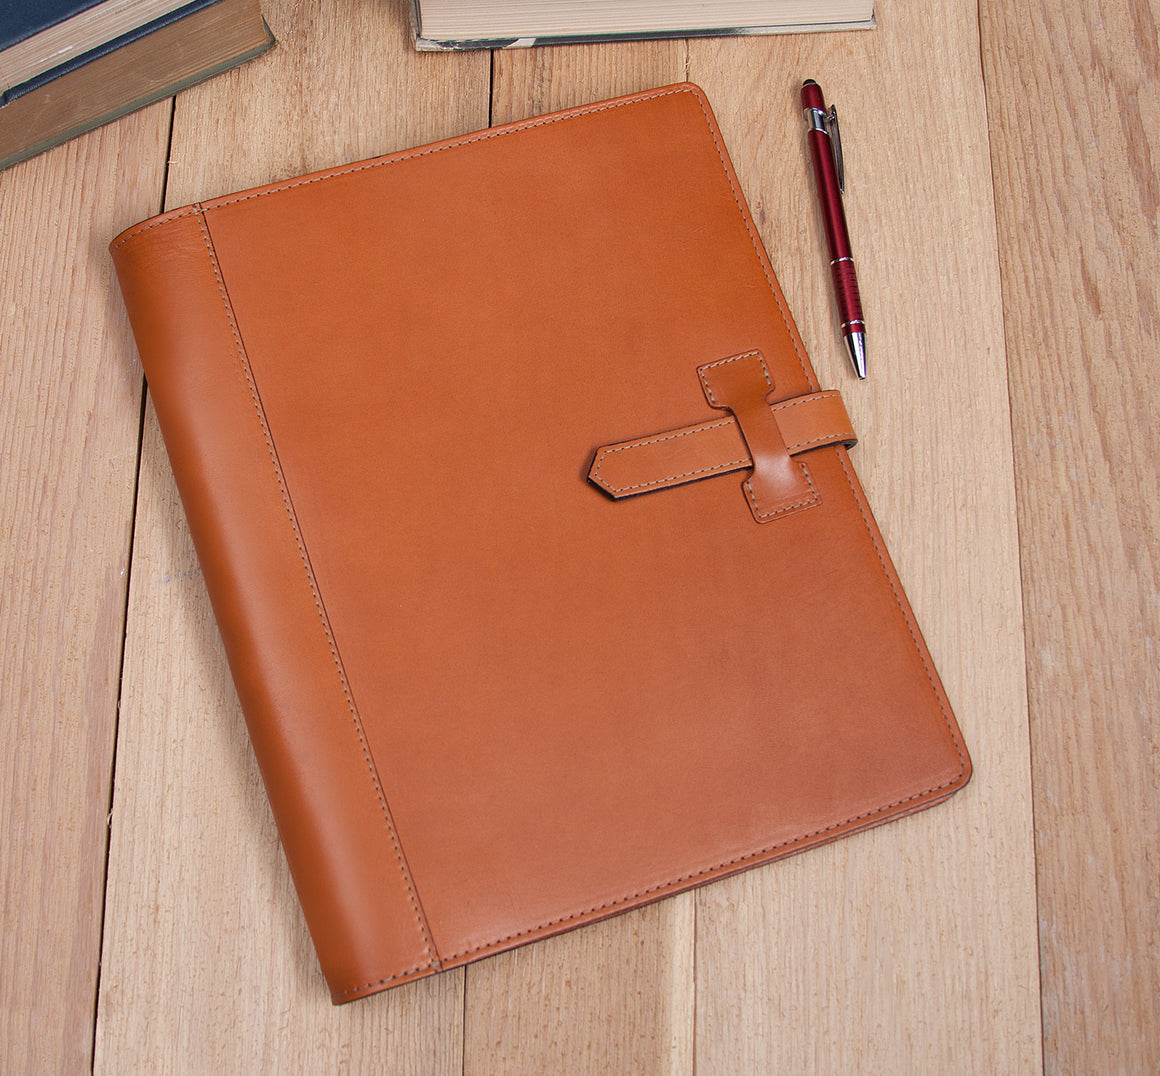 Executive Leather 3 Ring Binder Pad folio – Style # 303